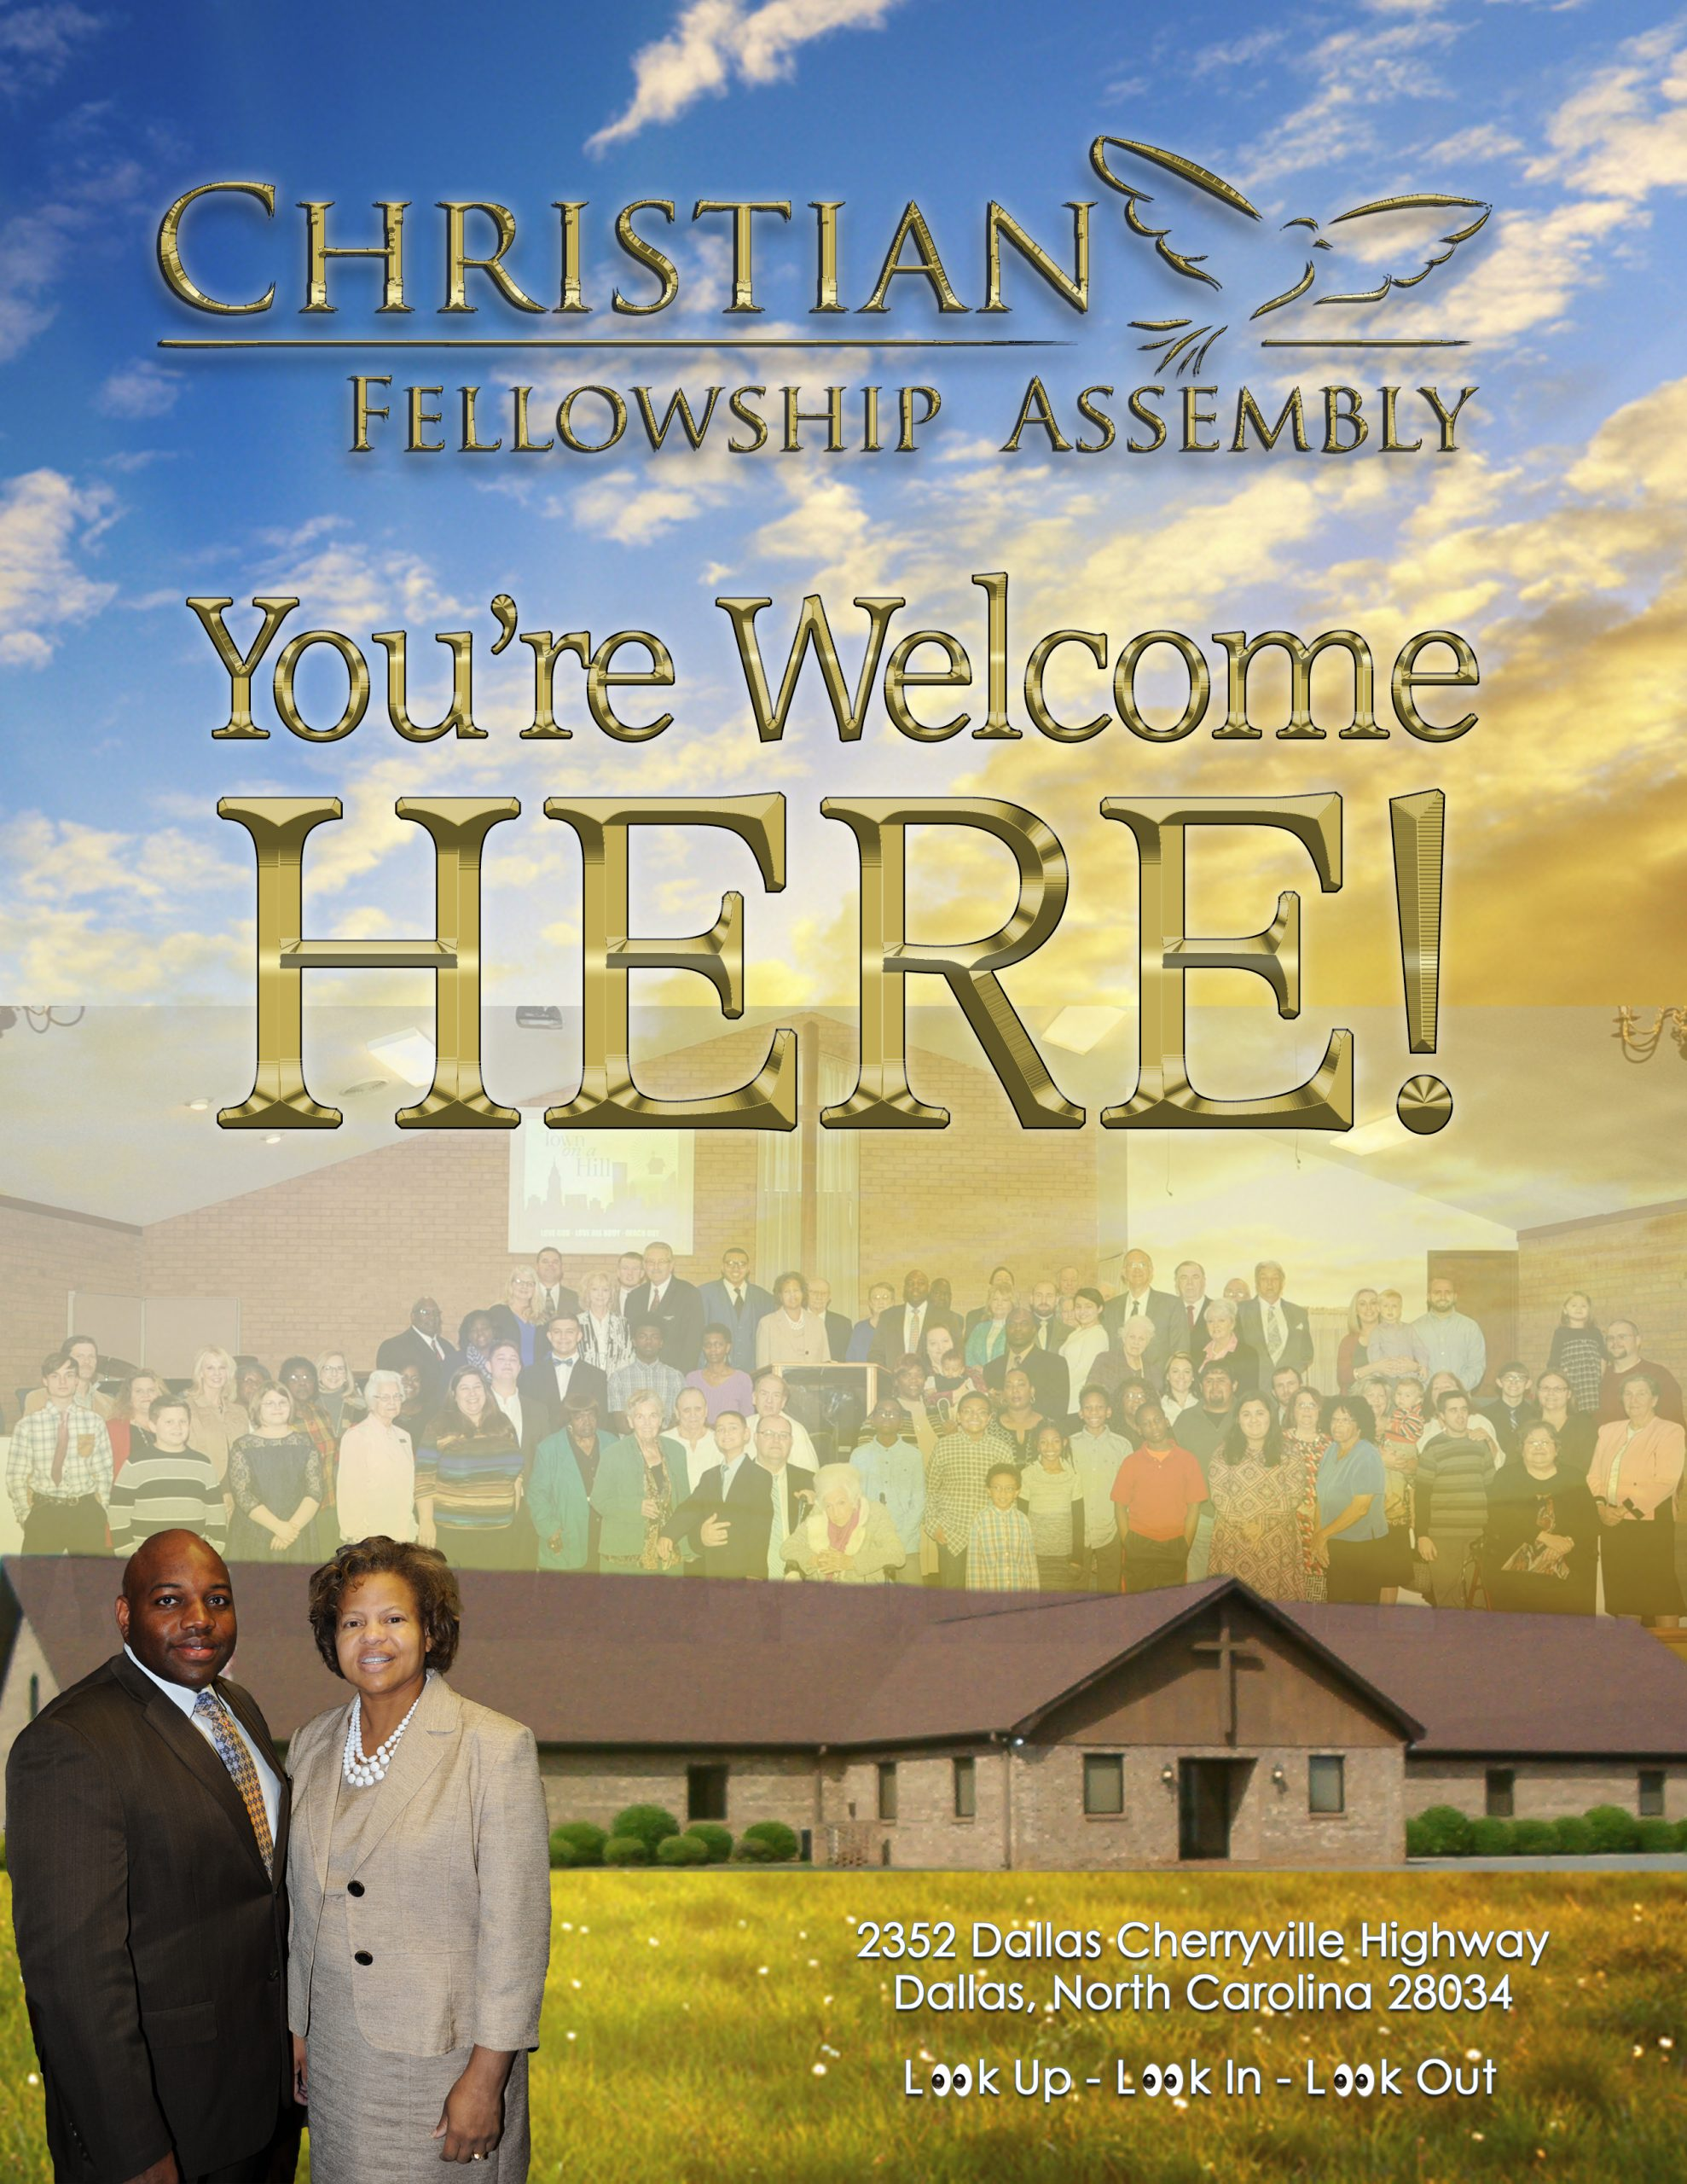 Christian Fellowship Assembly, Dallas, NC